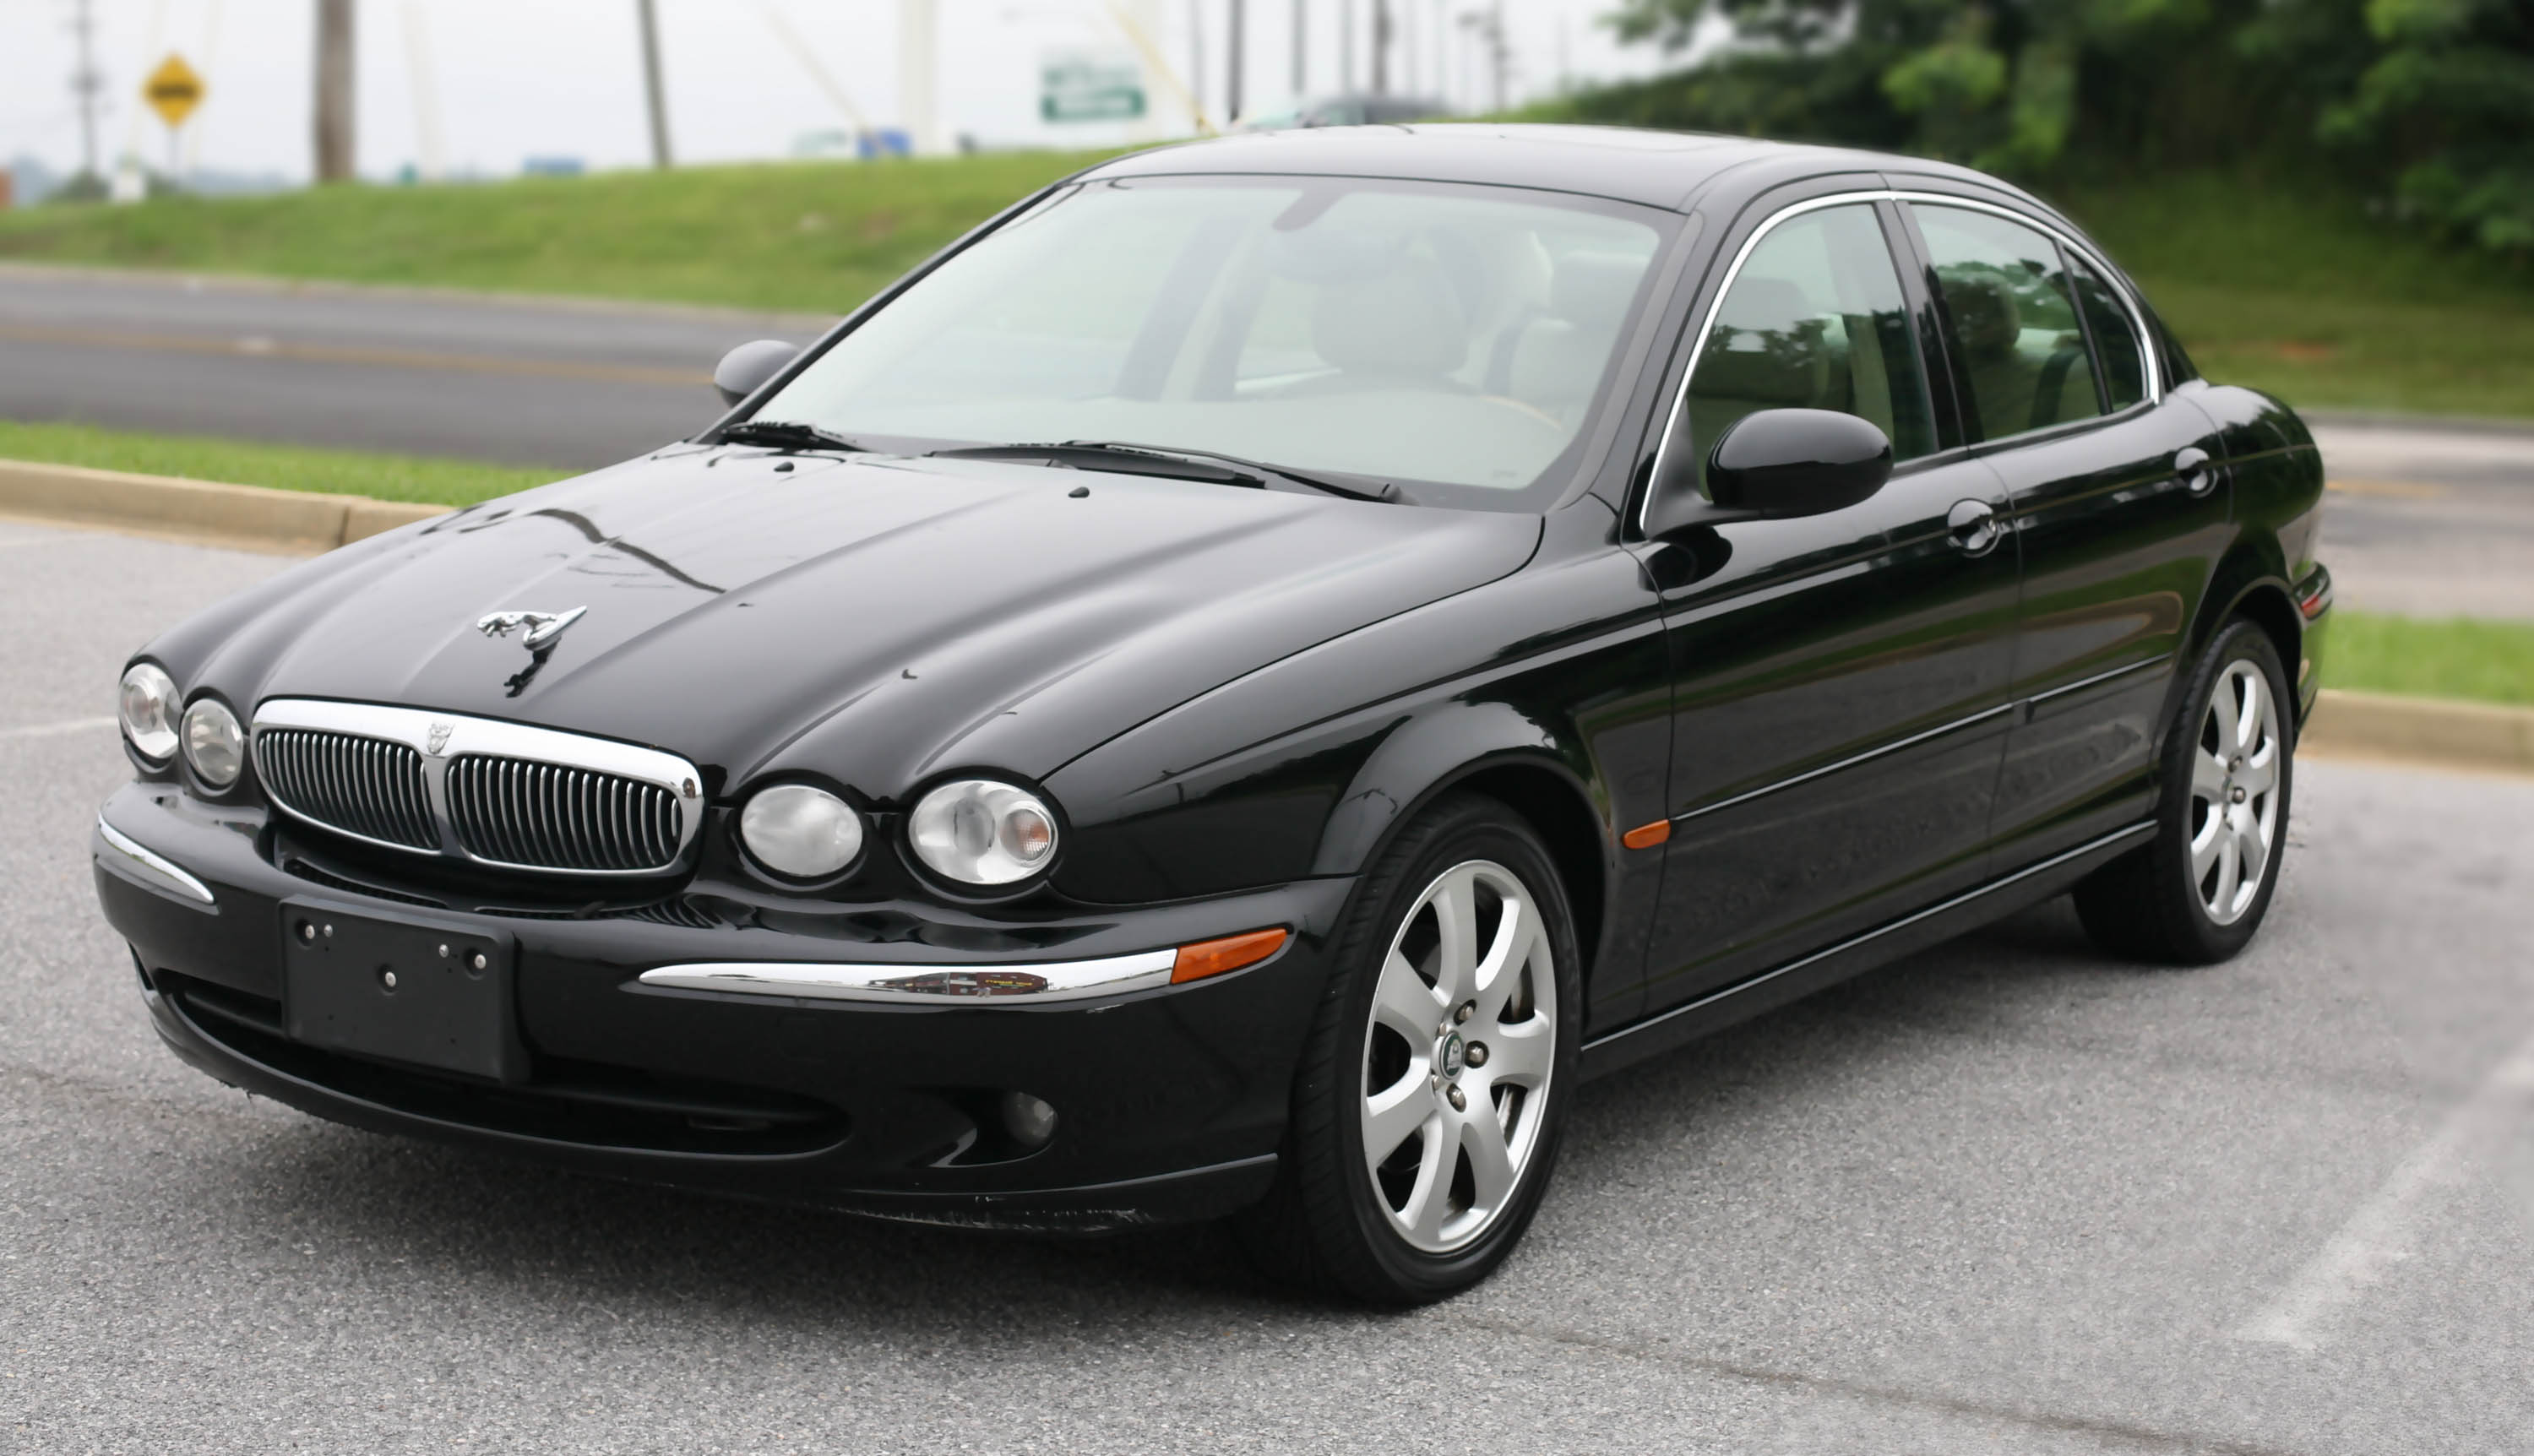 2005 Jaguar X-type #11